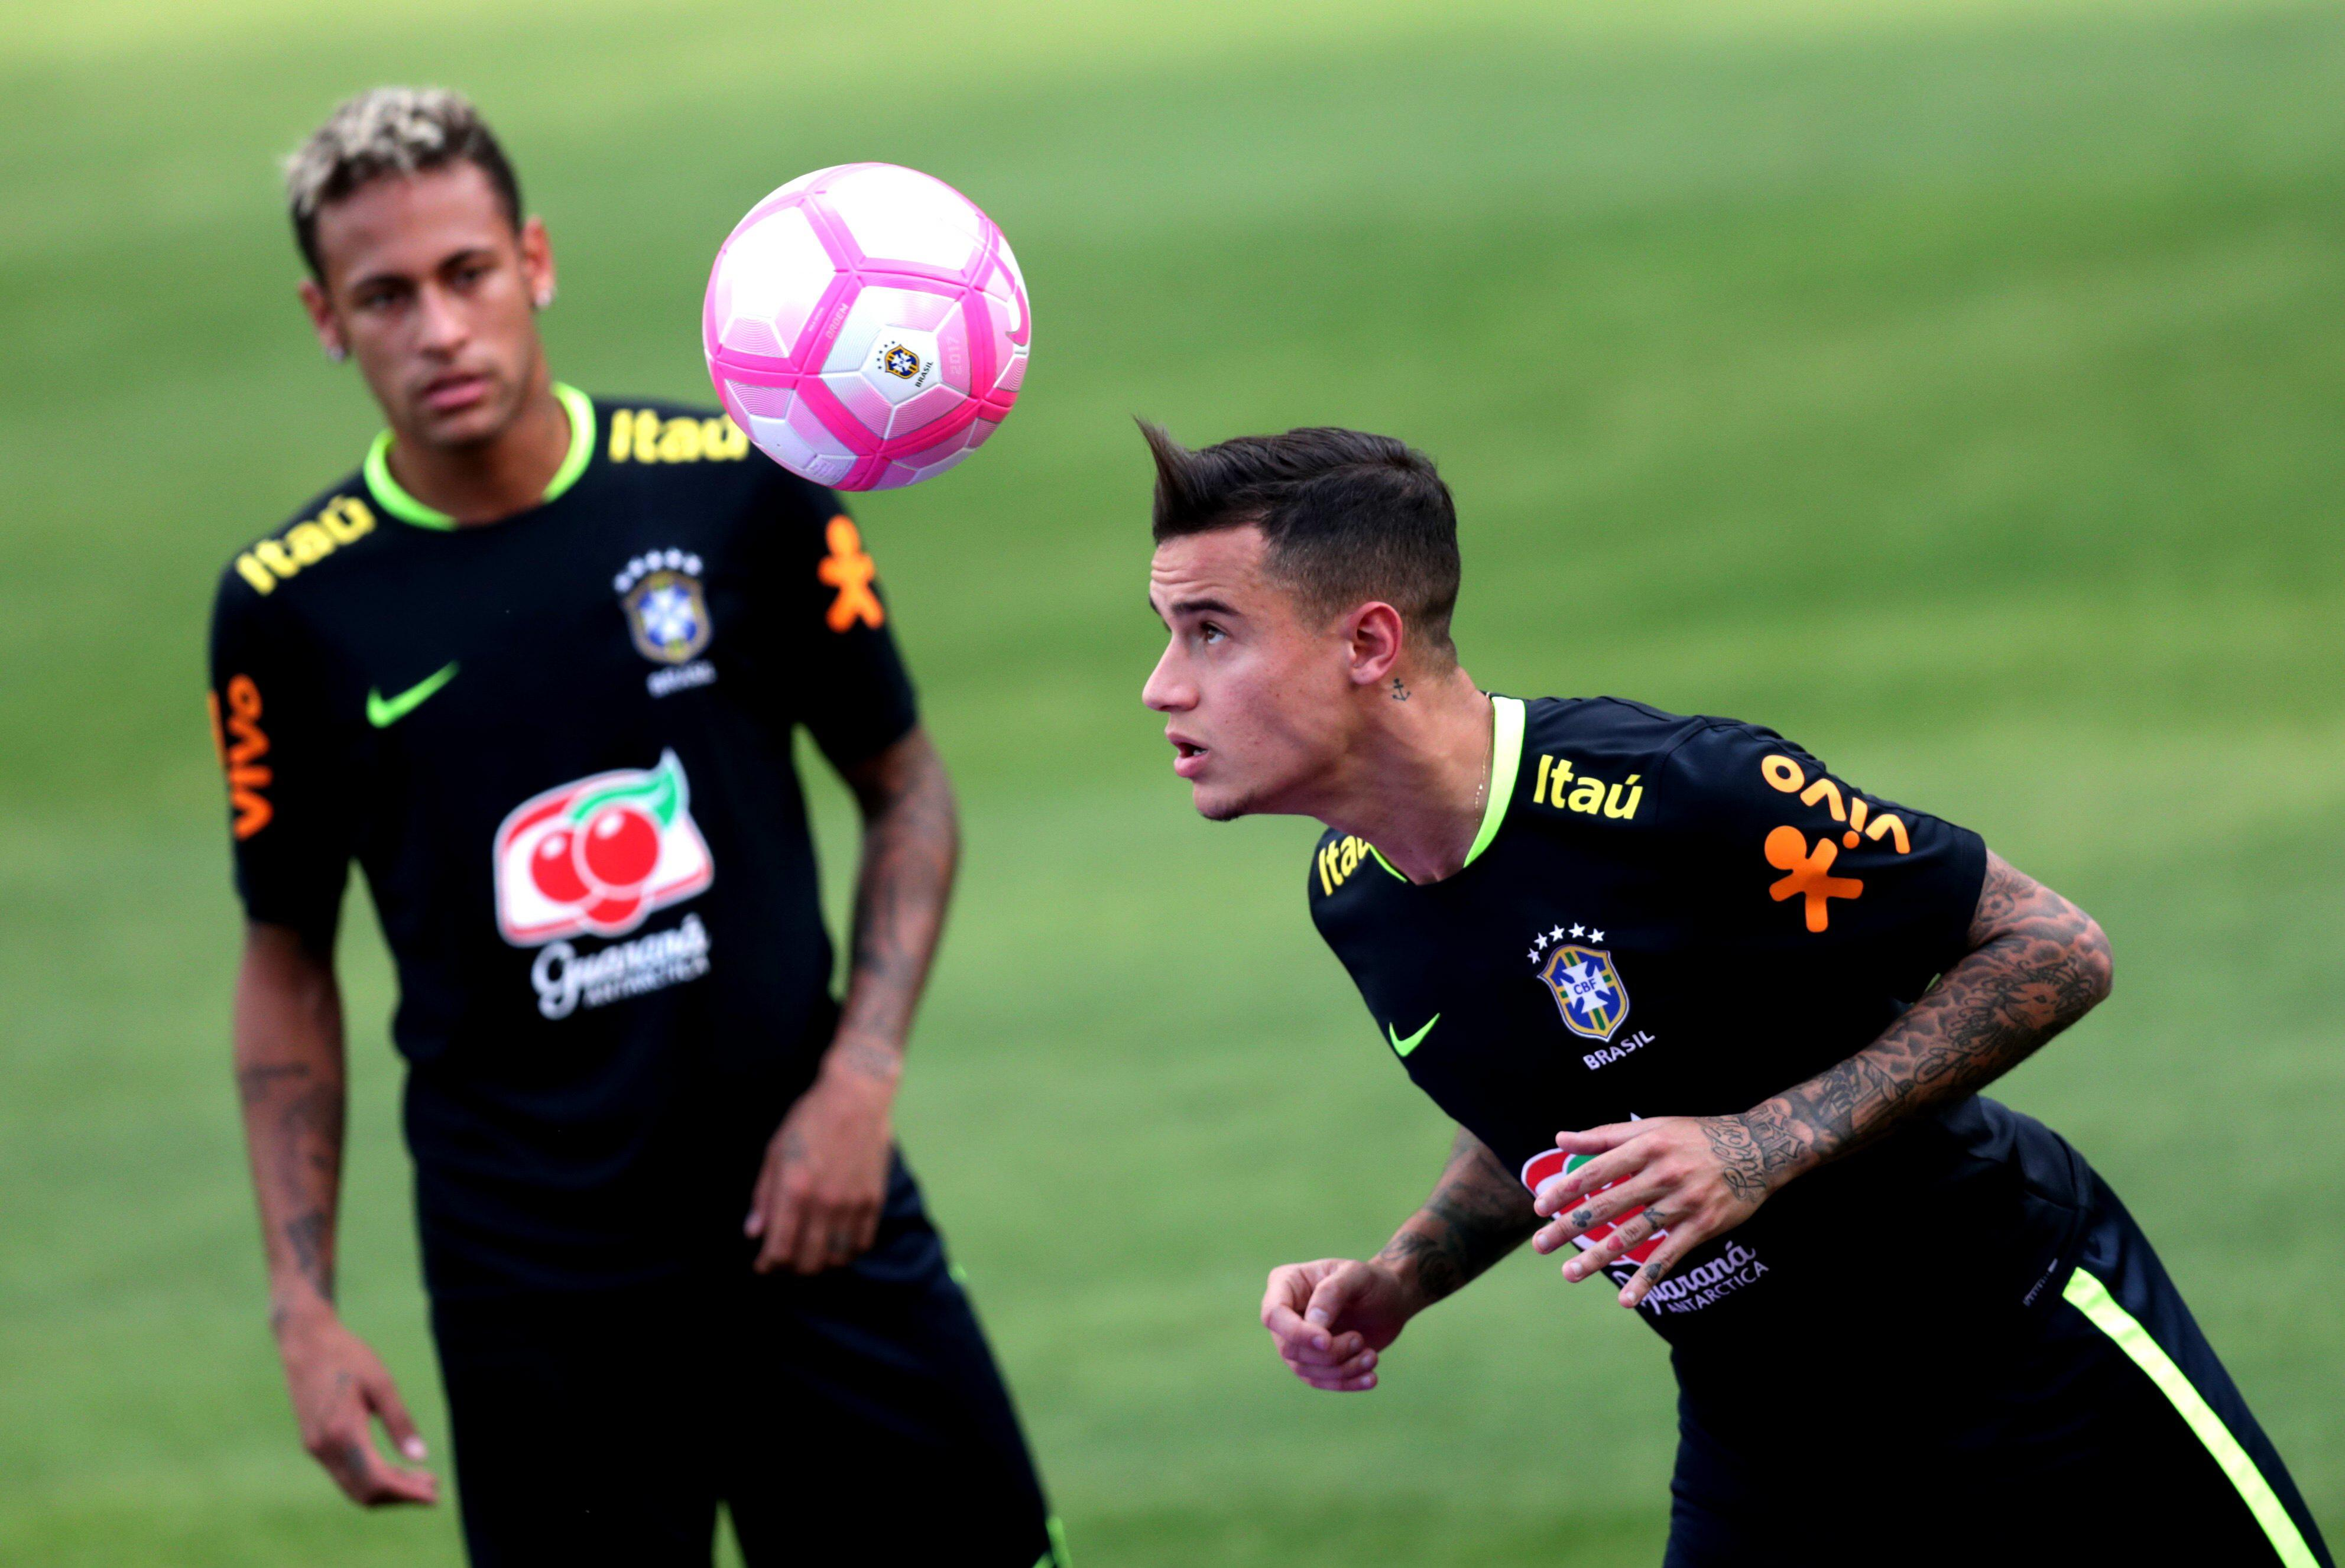 Philippe Coutinho lets the ball mess up his hair during the training session